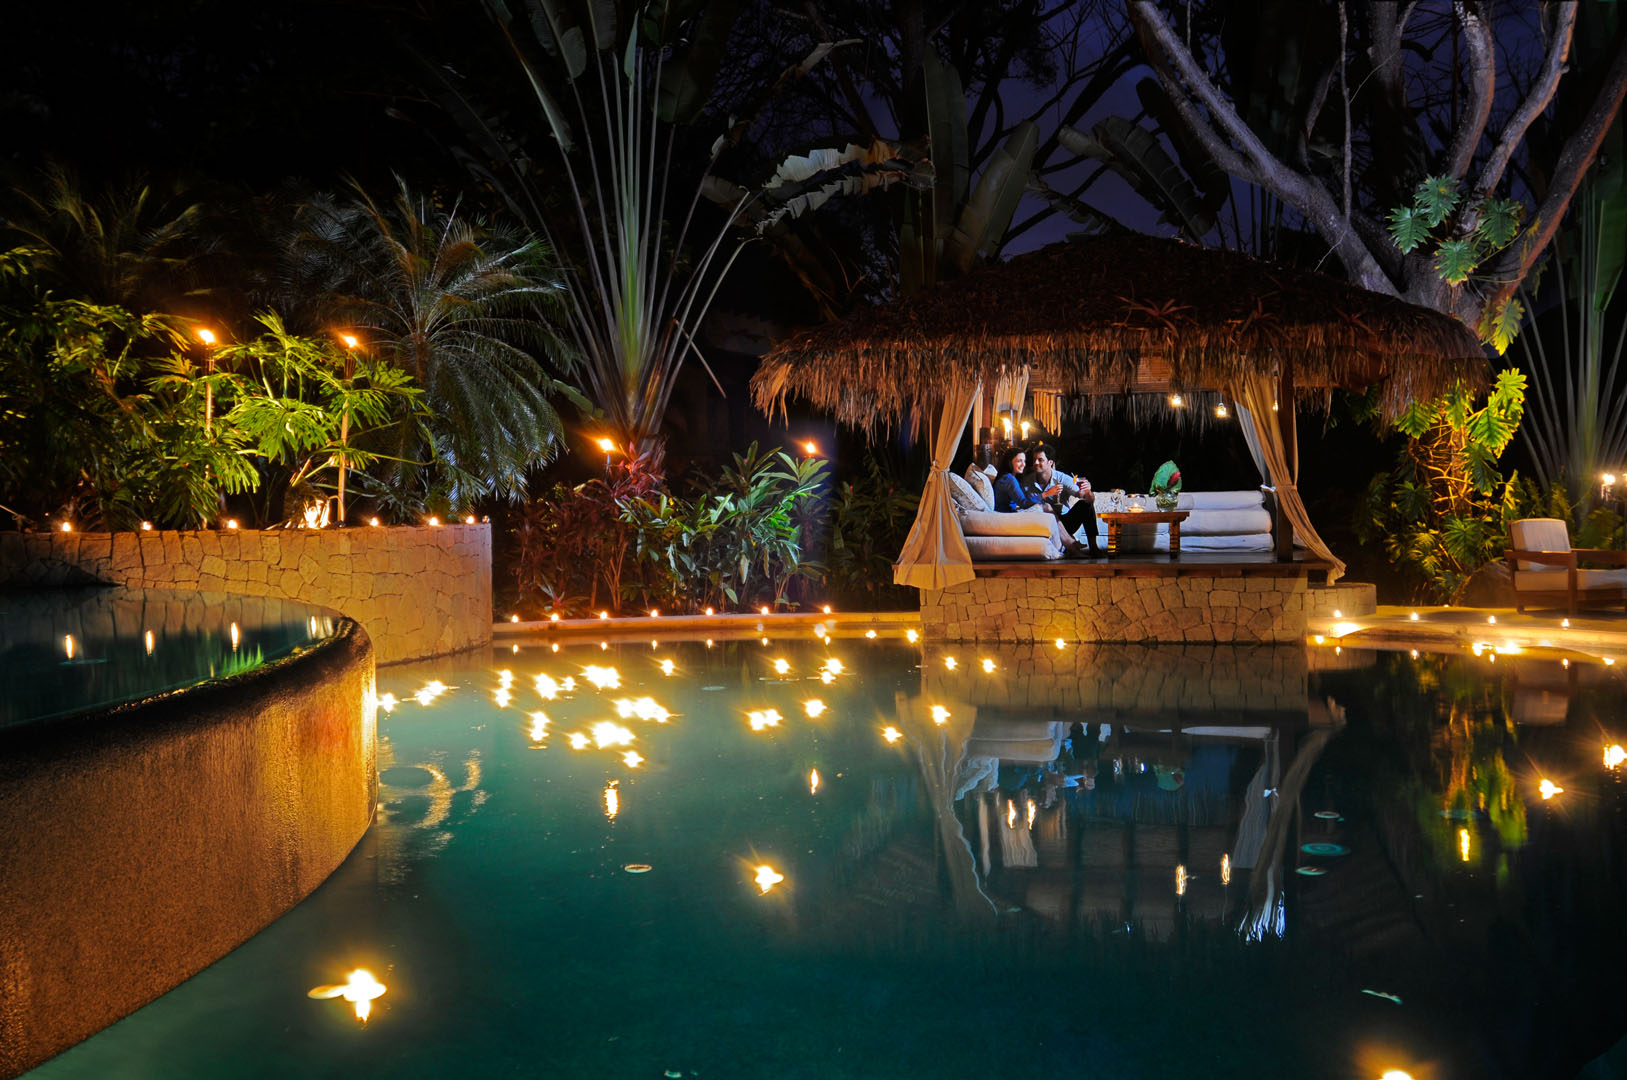 pool-relaxation-florblanca-costa-rica